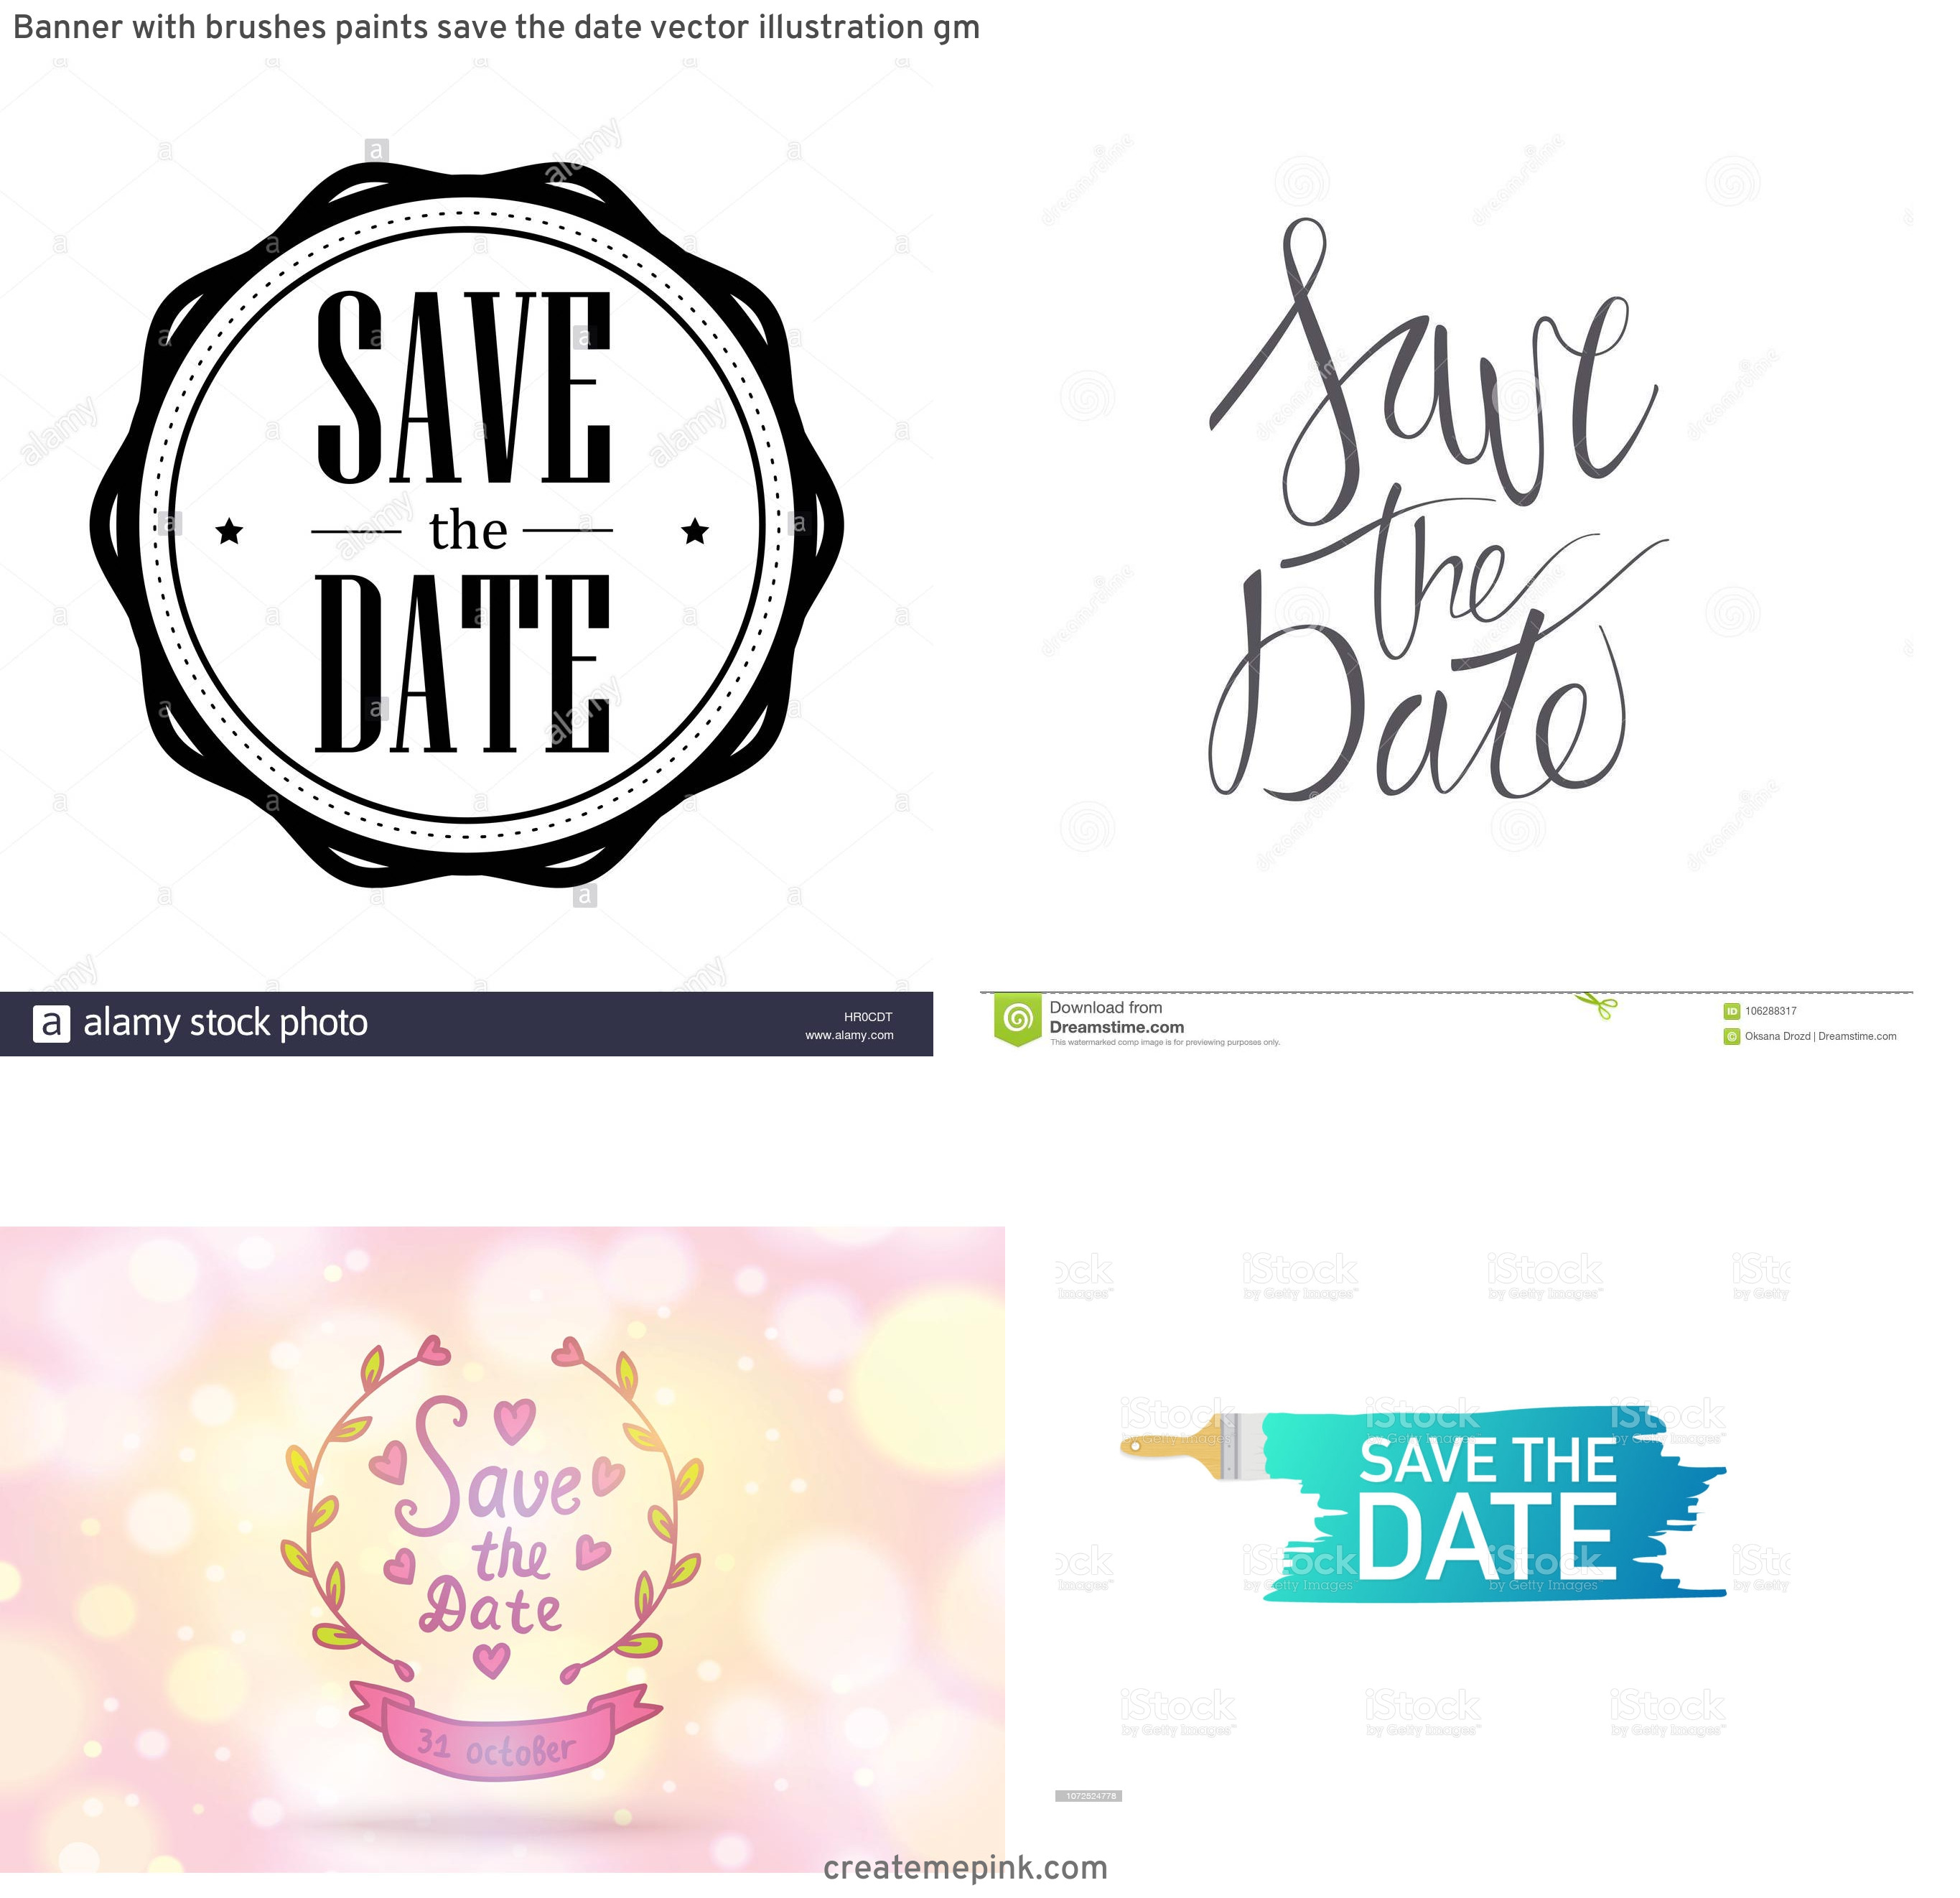 Save The Date Vector: Banner With Brushes Paints Save The Date Vector Illustration Gm